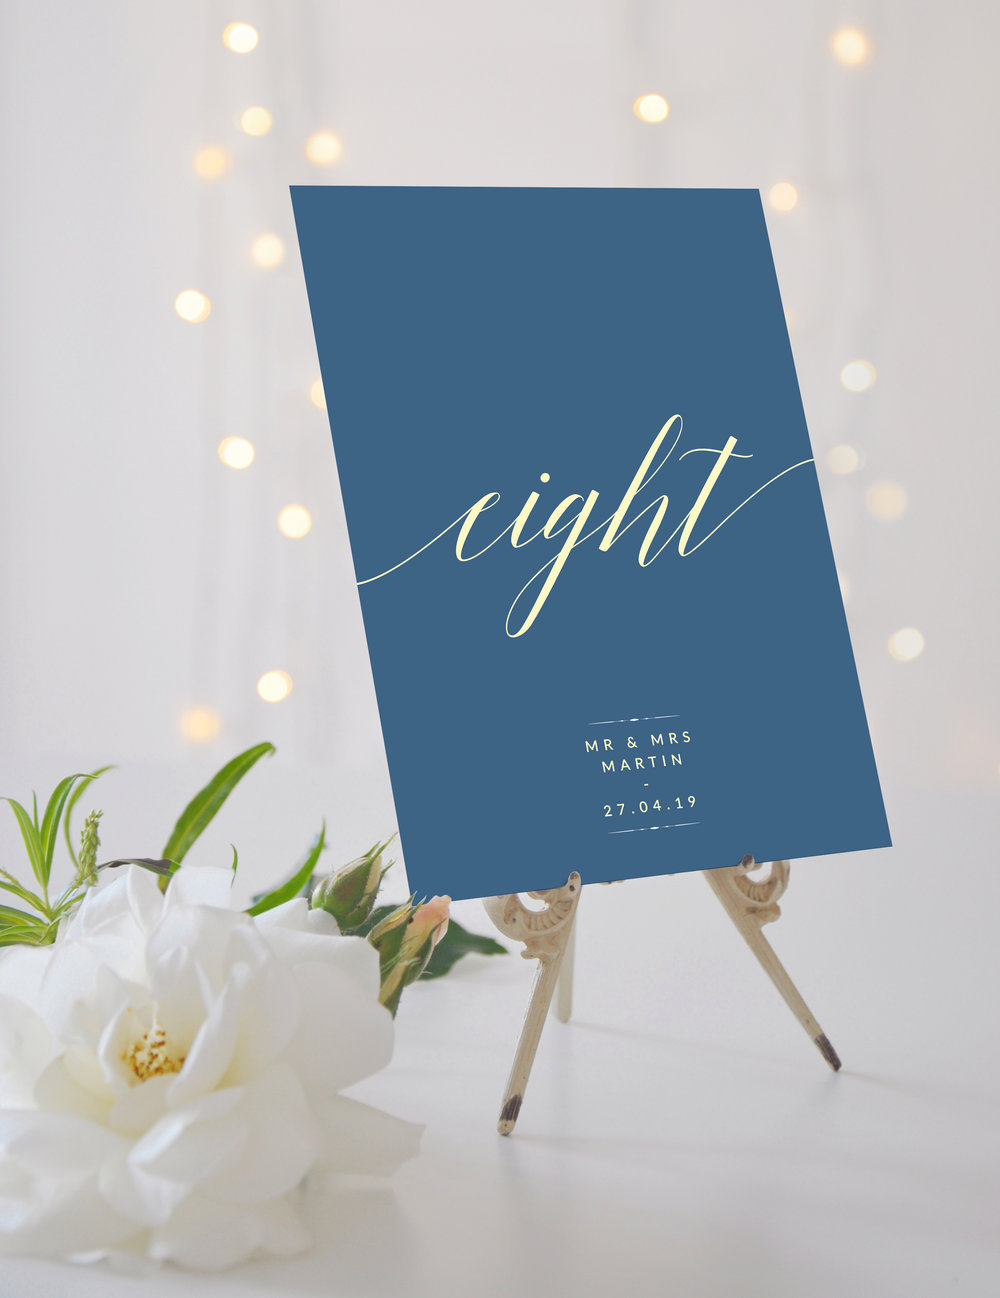 Table Name / Number - Our table cards are printed in a large A5 format and double-sided, so guests always know where they need to take their seat. You can opt for either standard numbering or creative naming; it's entirely up to you.